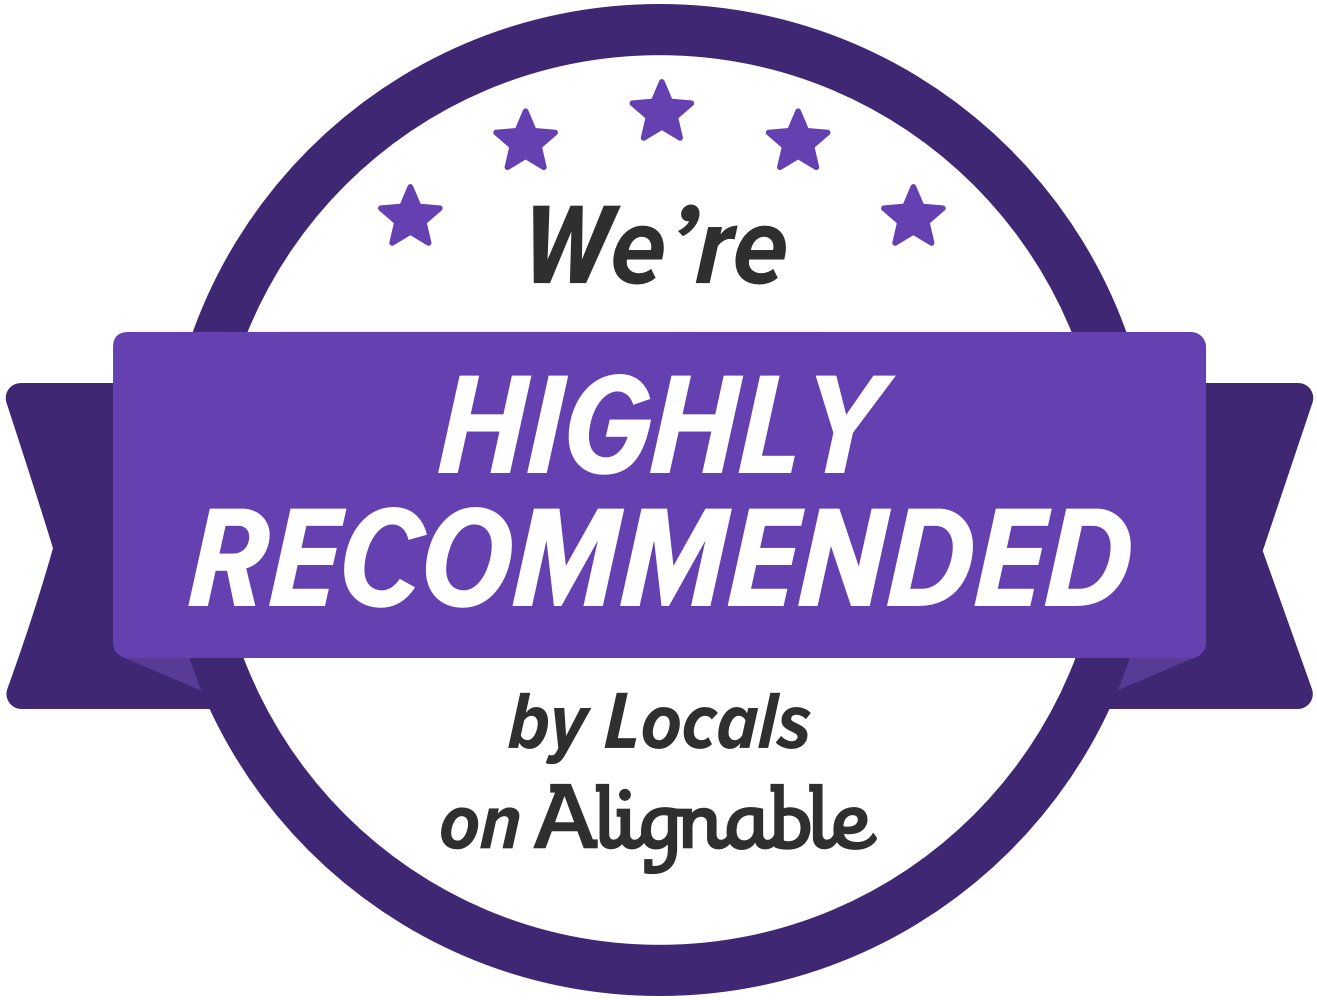 Recommendation from Local Businesses